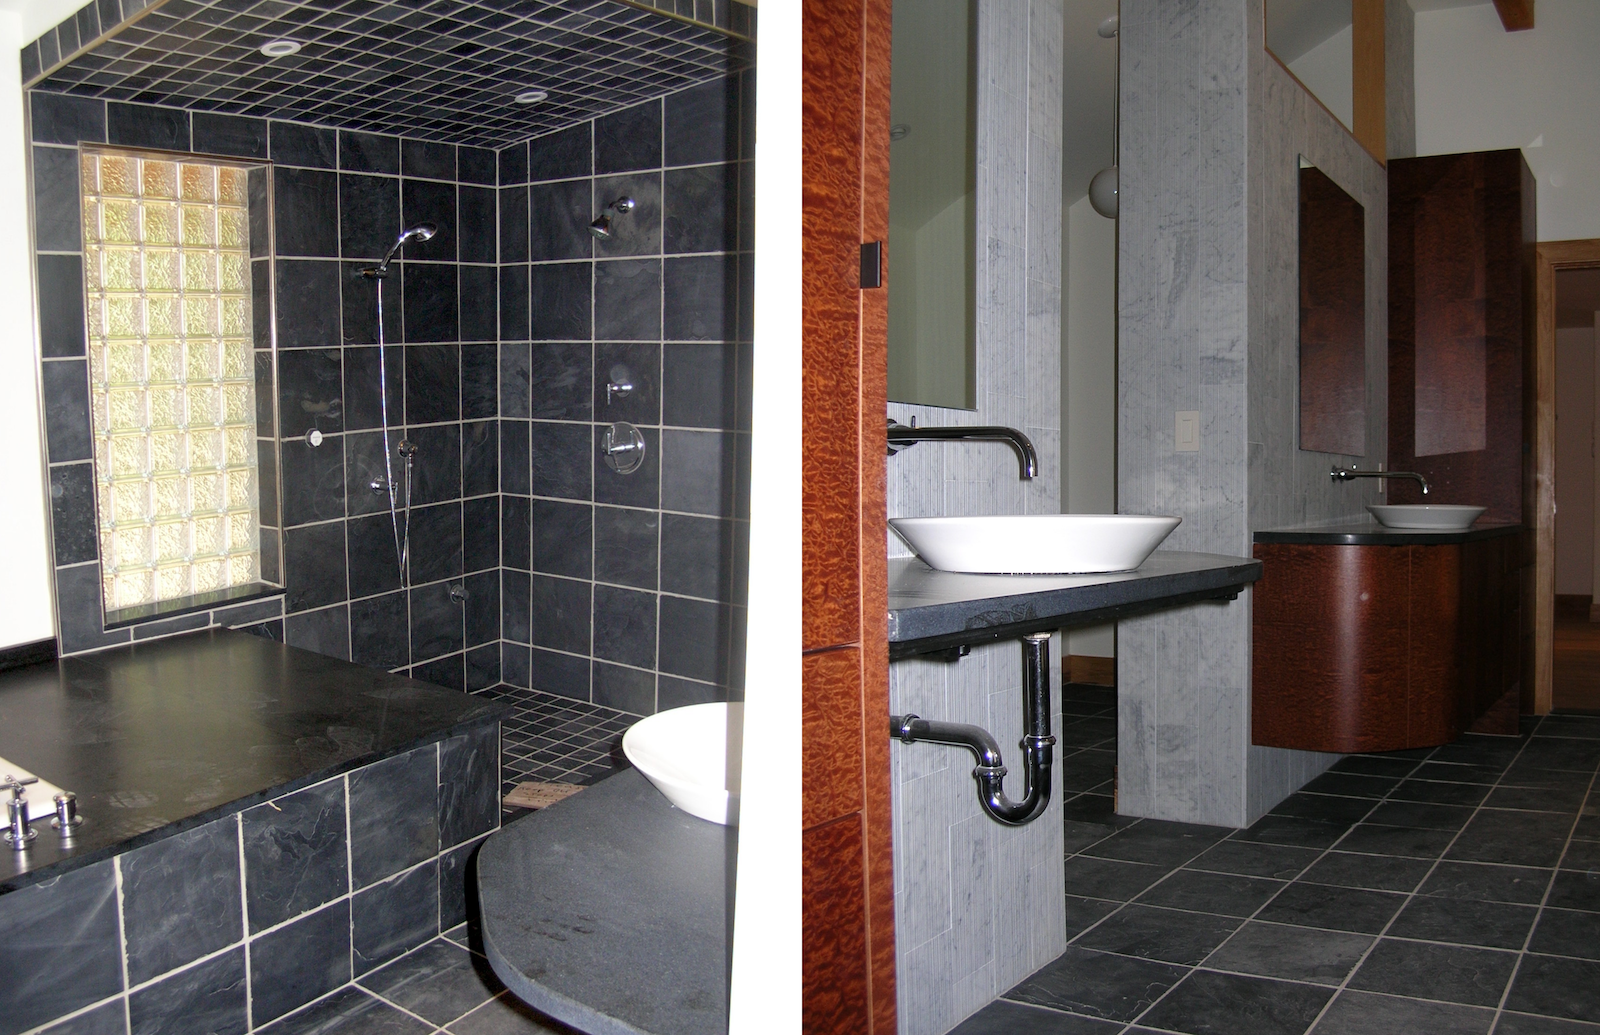 Price Slate Shower with Glass Block amd Wood Vanity.png